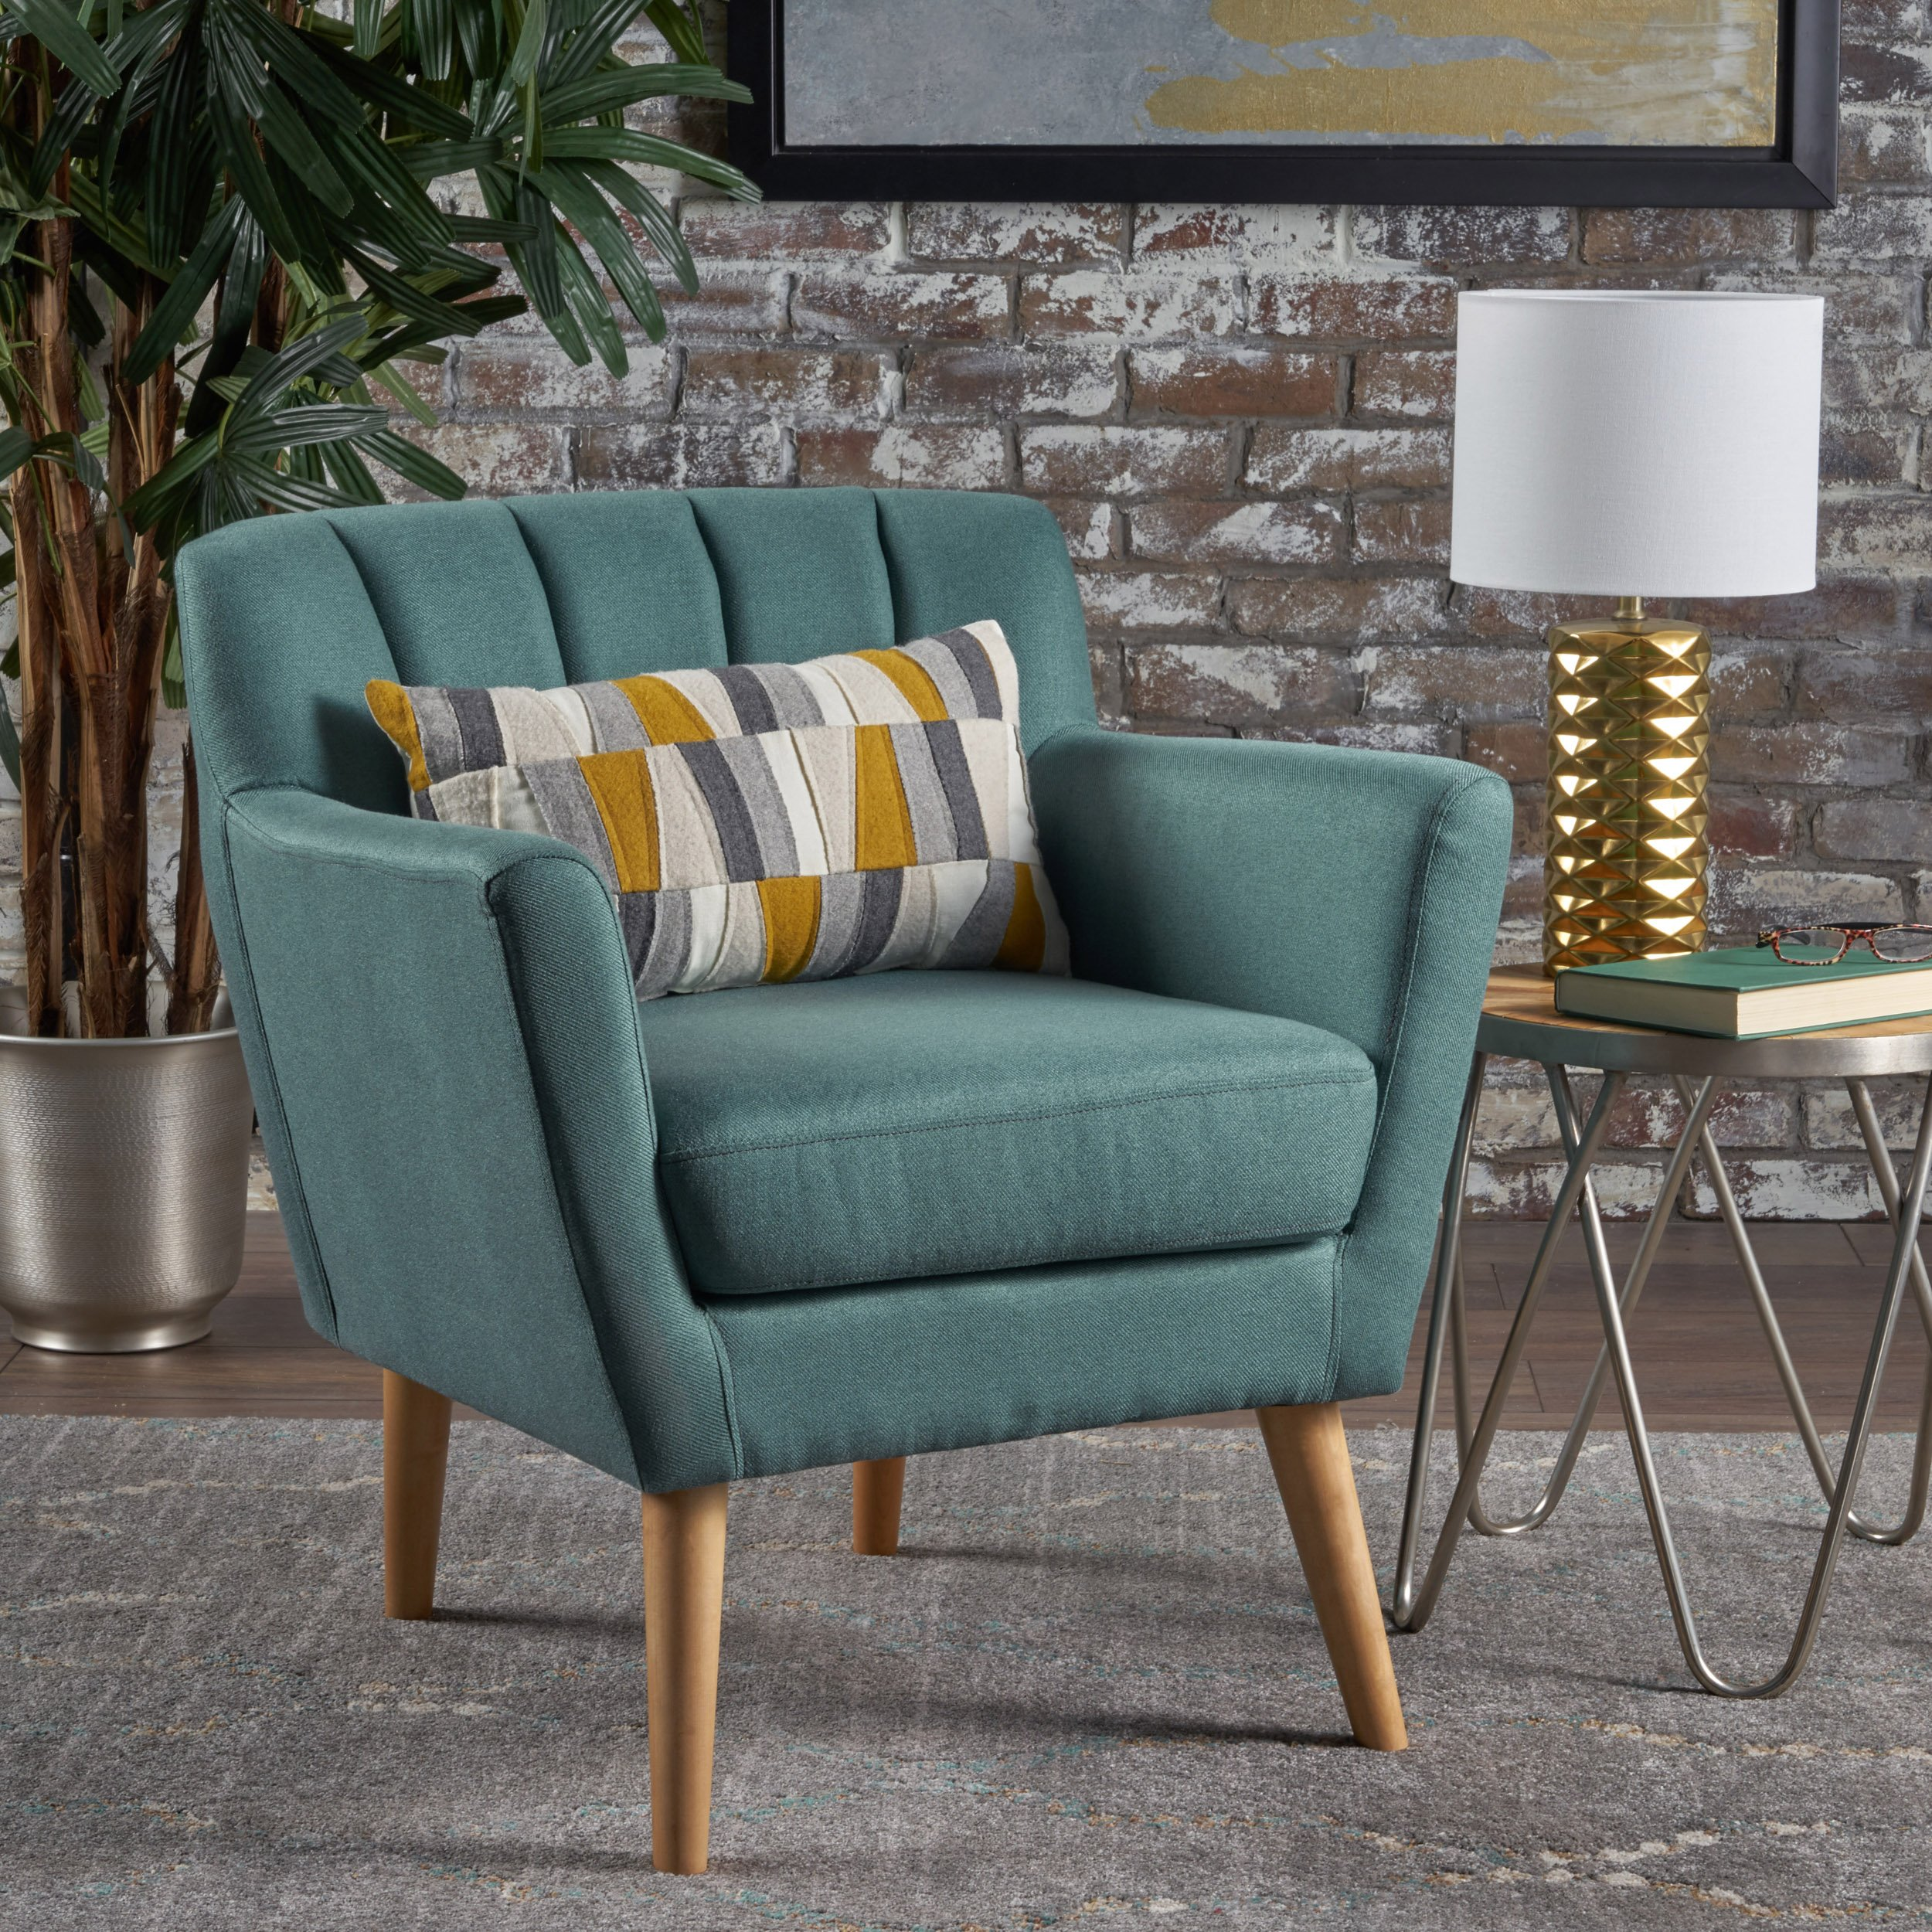 Christopher Knight Home Merel Mid Century Modern Fabric Club Chair, Dark Teal/Natural by Christopher Knight Home